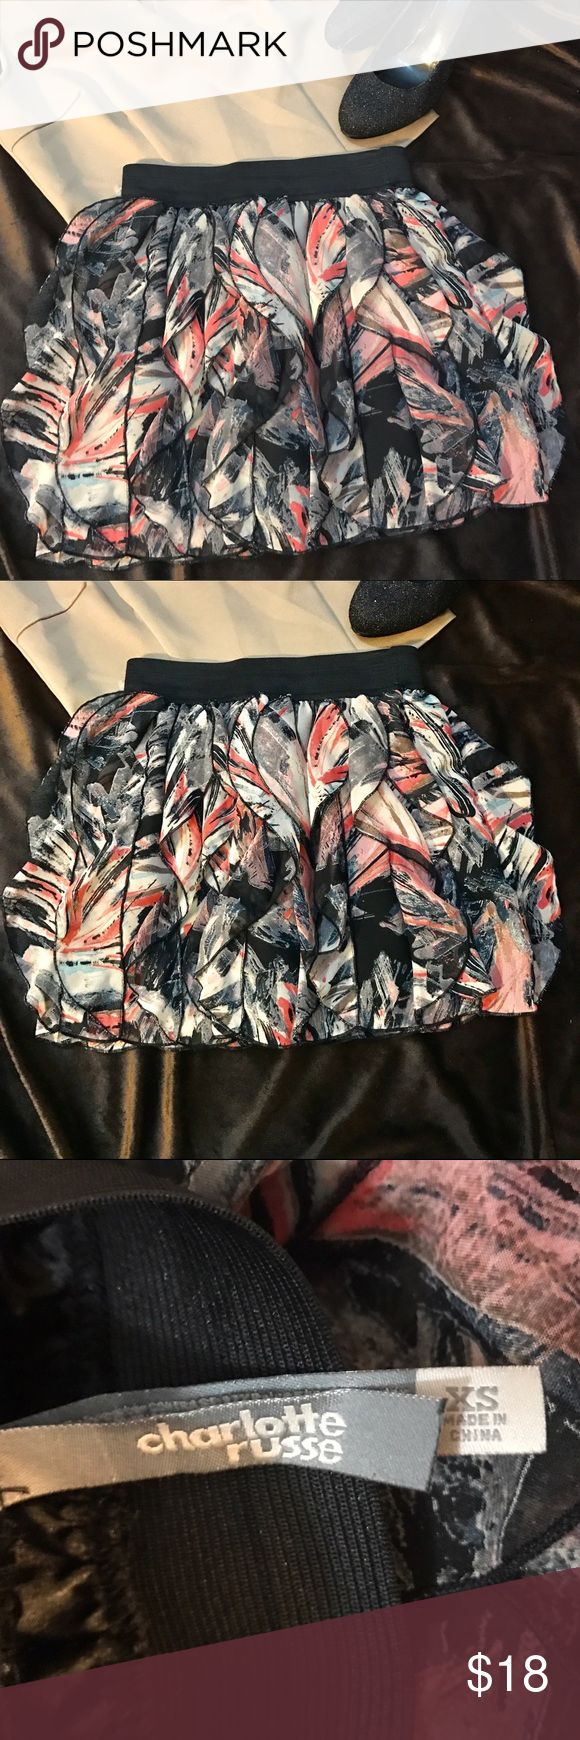 """🆕Flounced Abstract Skirt by Charlotte Russe An adorable Charlotte Russe chiffon flounce skirt in an abstract print of black, white, coral, beige and gray that can be worn for school, social, parties, or work. Black elasticized waistband, black lining and sheer layered chiffon made of 100% washable polyester. Waist measurement 11.5"""" unstretched, up to 15.5"""" stretched; hip 18"""" across the lining; length 12.5"""". Please note: shoes and/or accessories are for styling purpose and not included. Top…"""